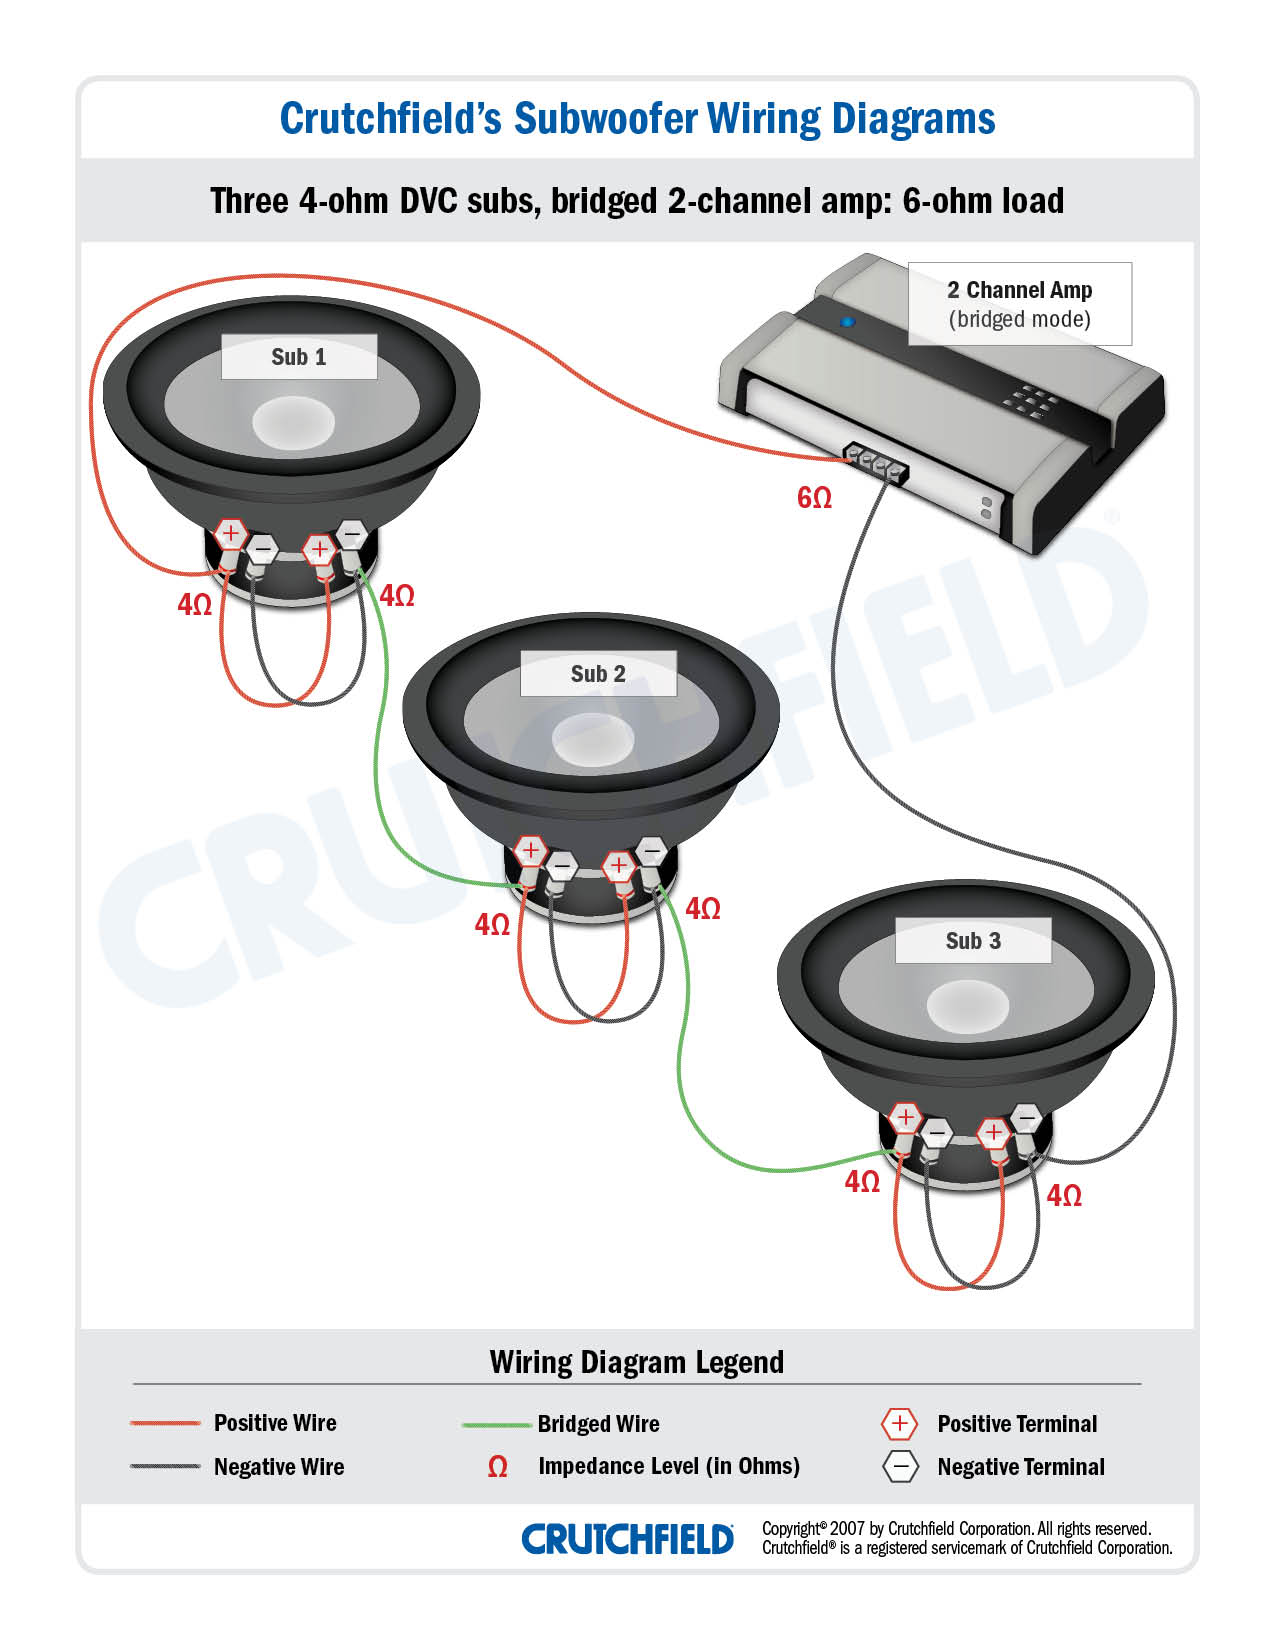 3 DVC 4 ohm 2 ch wiring diagram for kicker led speakers readingrat net kicker led speaker wiring diagram at reclaimingppi.co